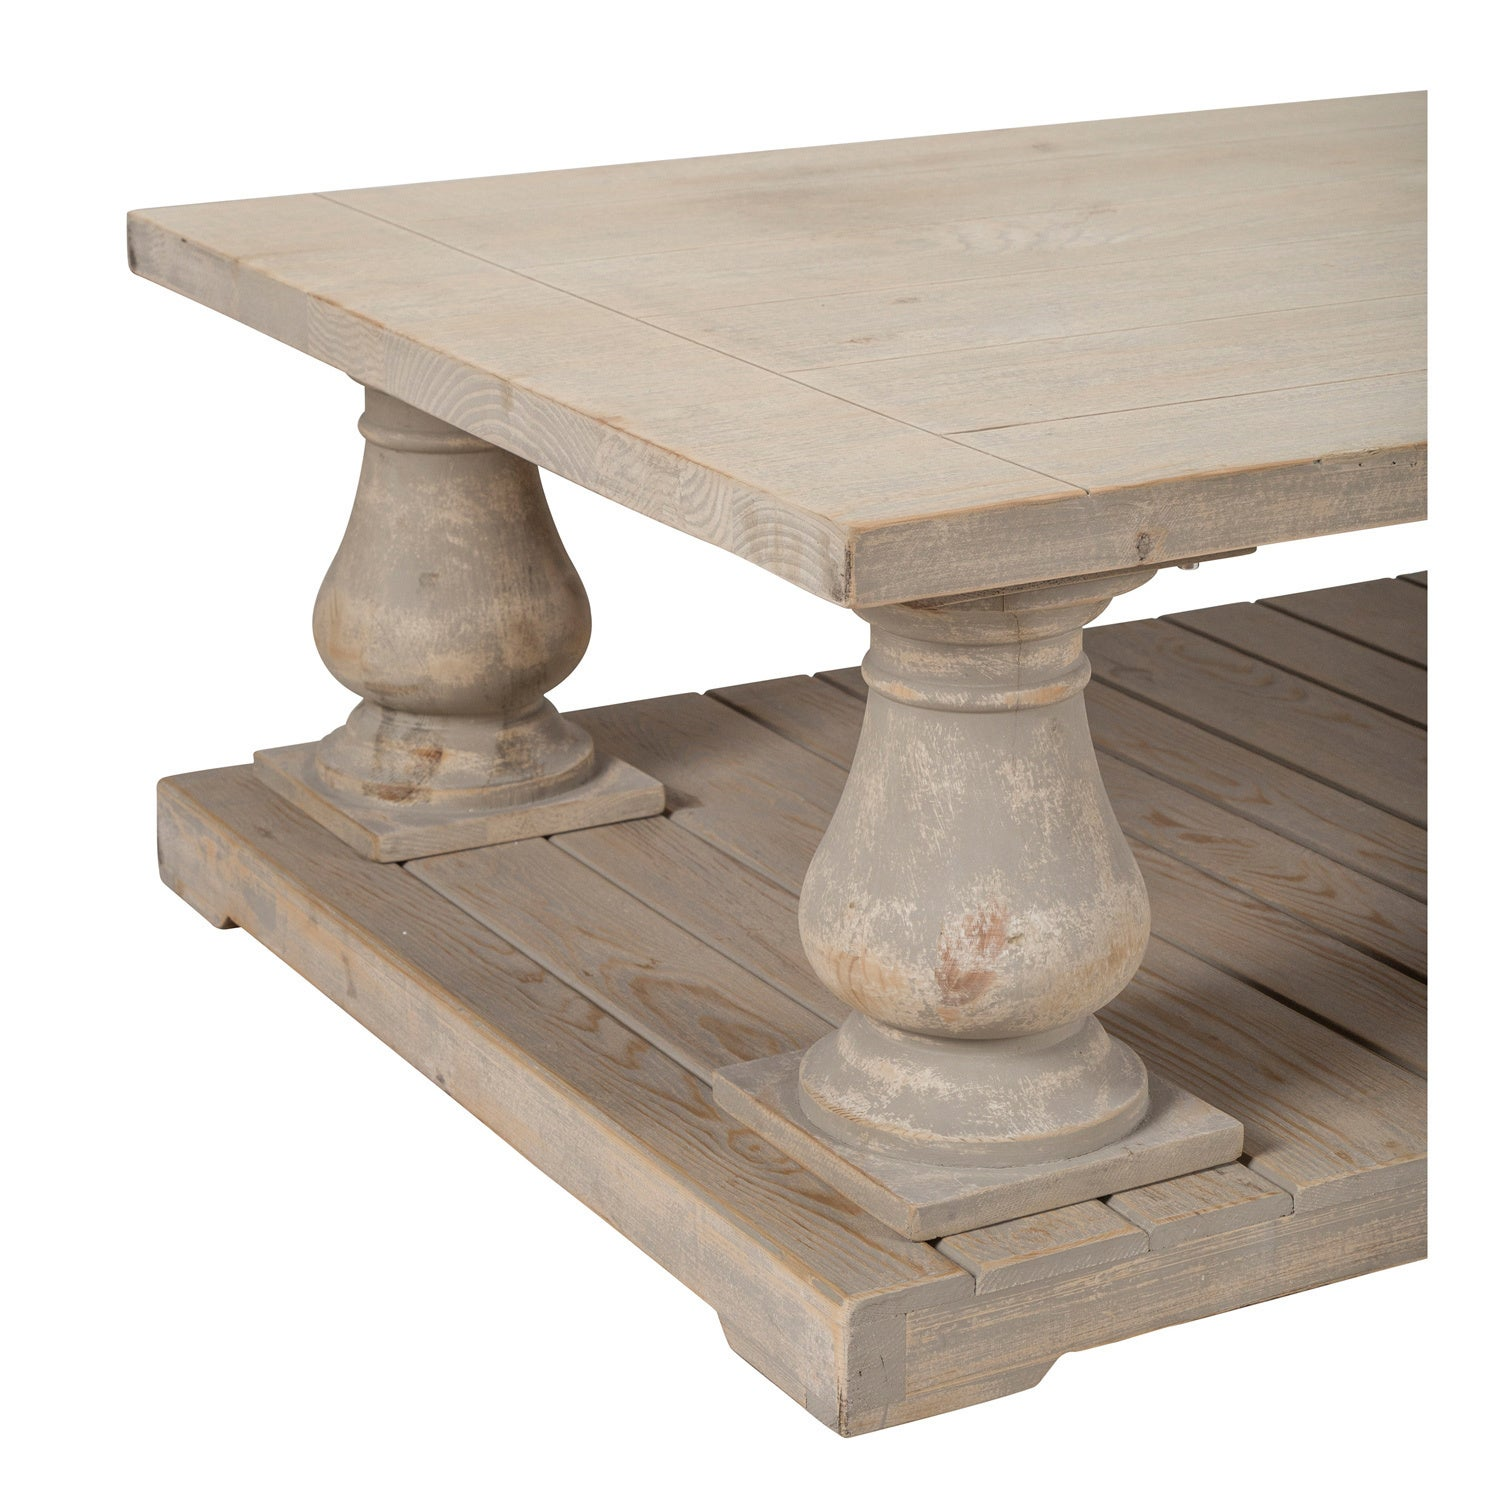 Wilson Antique White Reclaimed Pine Coffee Table By Kosas Home   Free  Shipping Today   Overstock.com   15320016